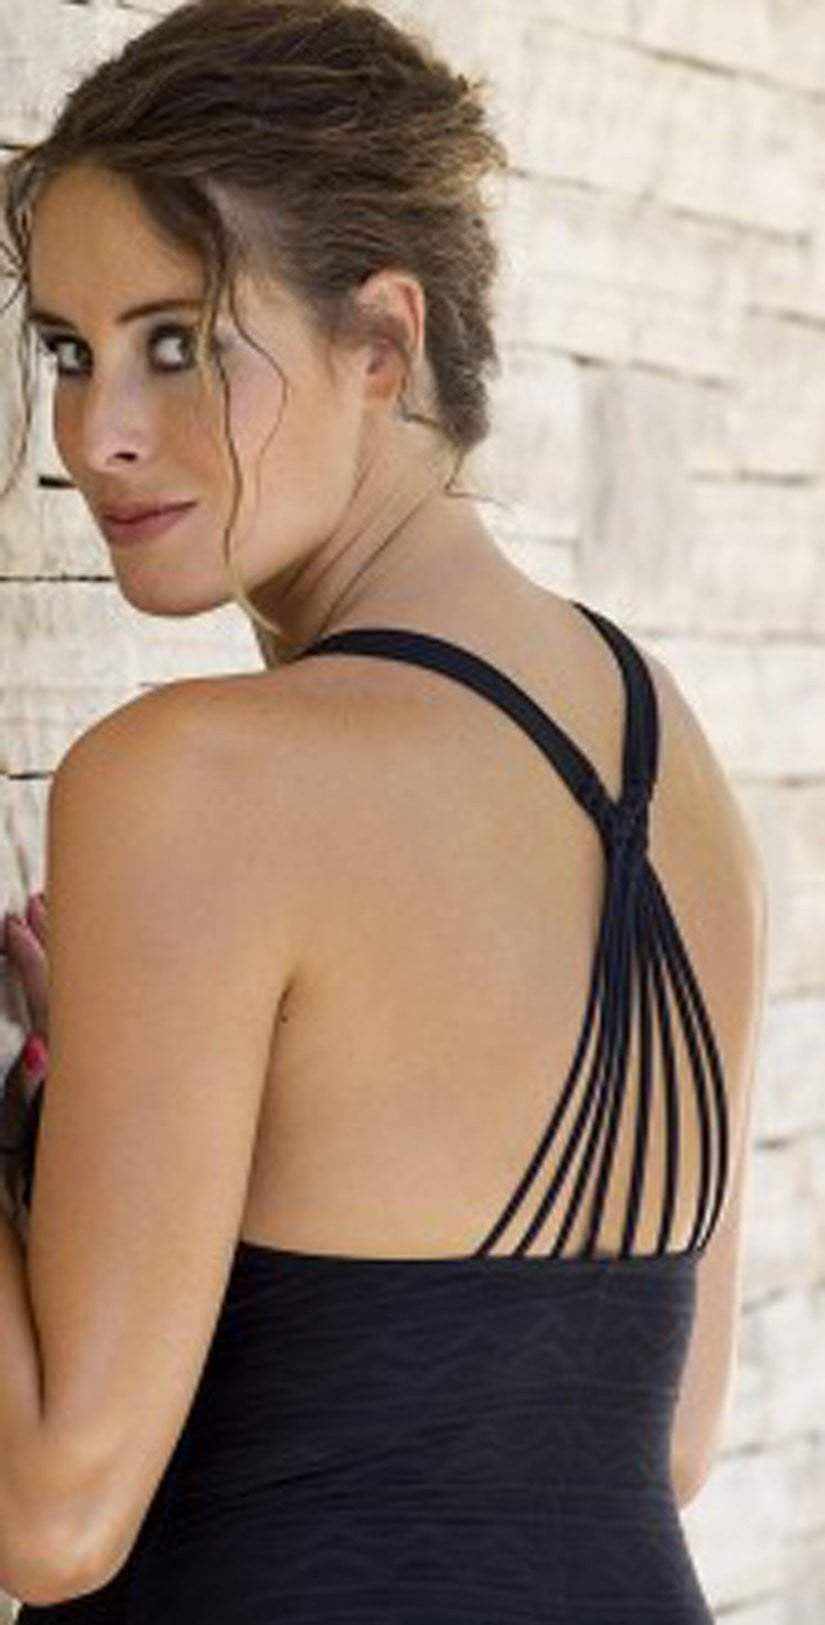 Cache Coeur Maternity Bali One Piece Swimsuit In Black BM174-NOIR: